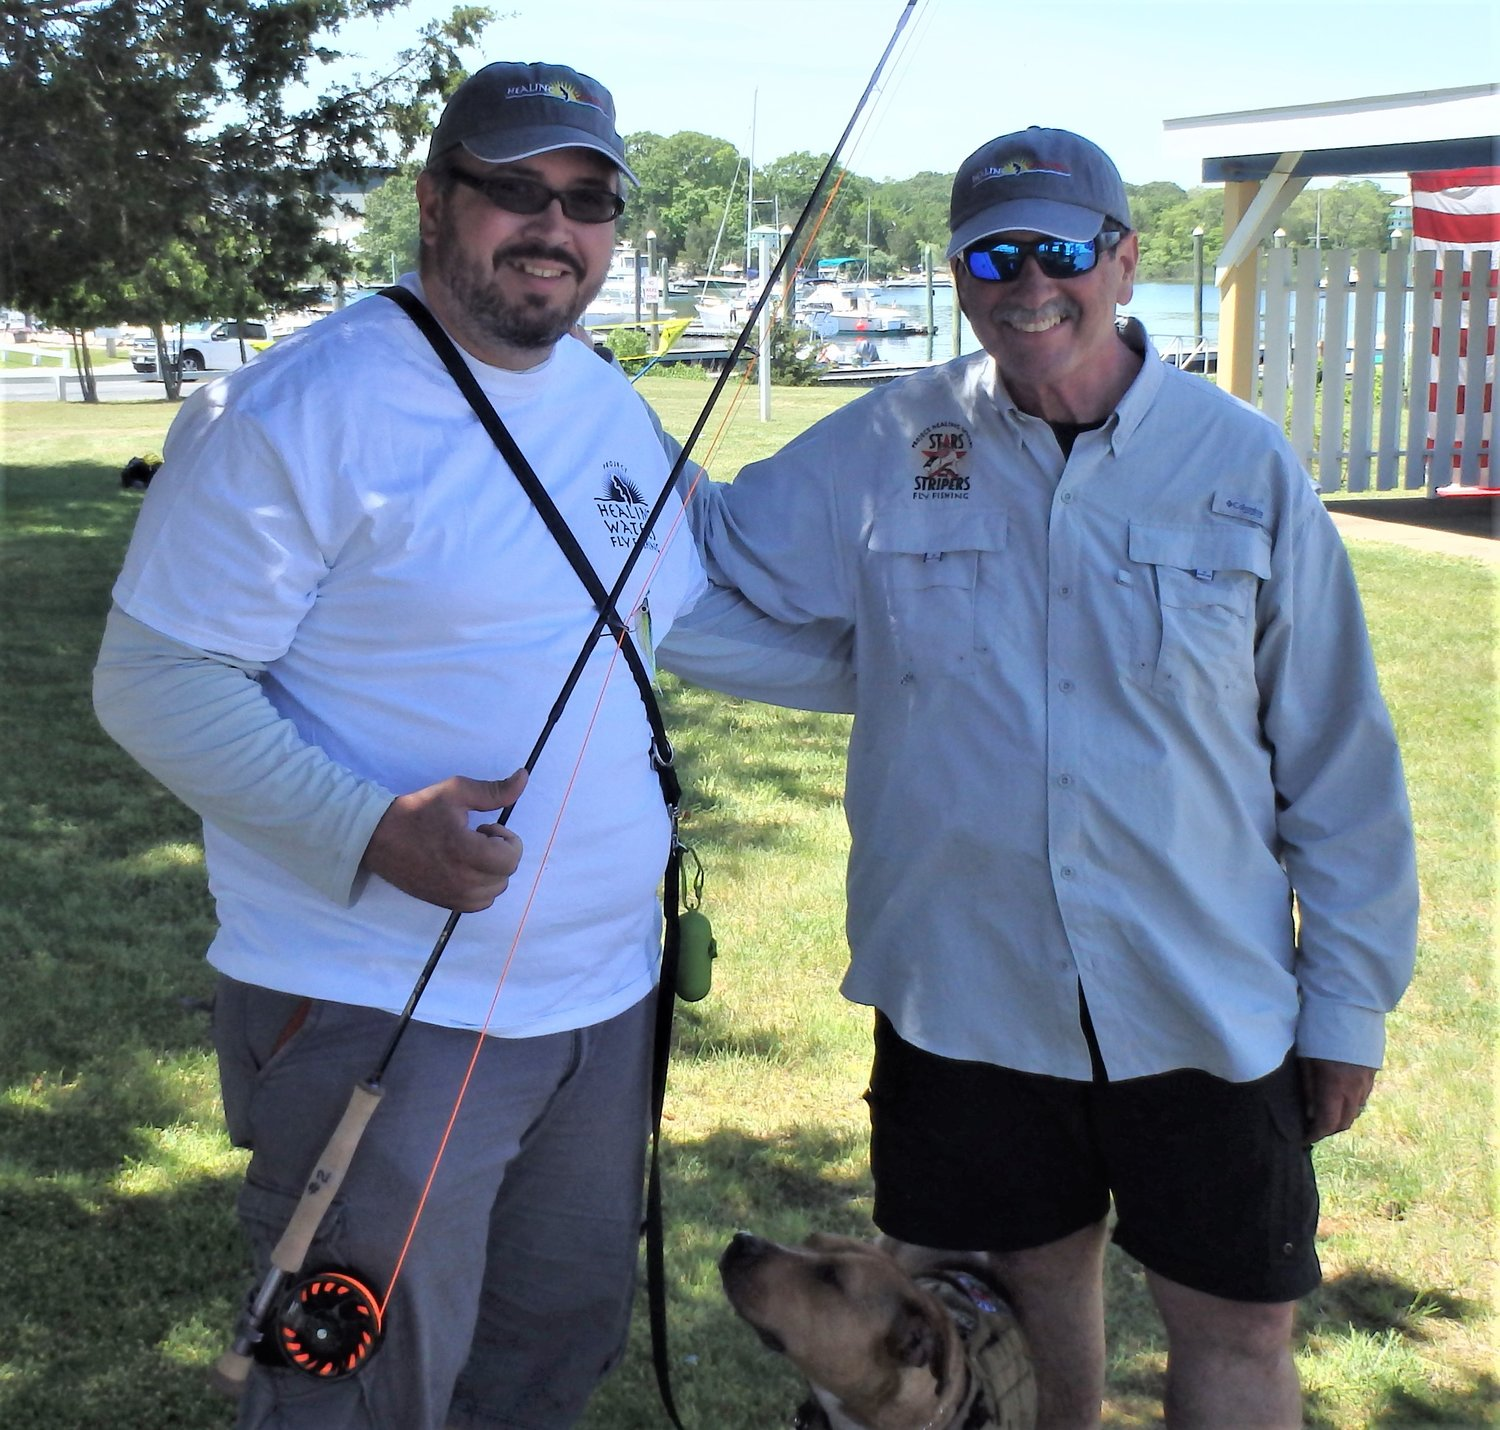 Bluefish bite arrives: Chris Boutin, Marine and Army Guard combat veteran, service dog Freya, and Capt. Monti fished Project Healing Waters as a team. Chris's fly hooked up with multiple bluefish.